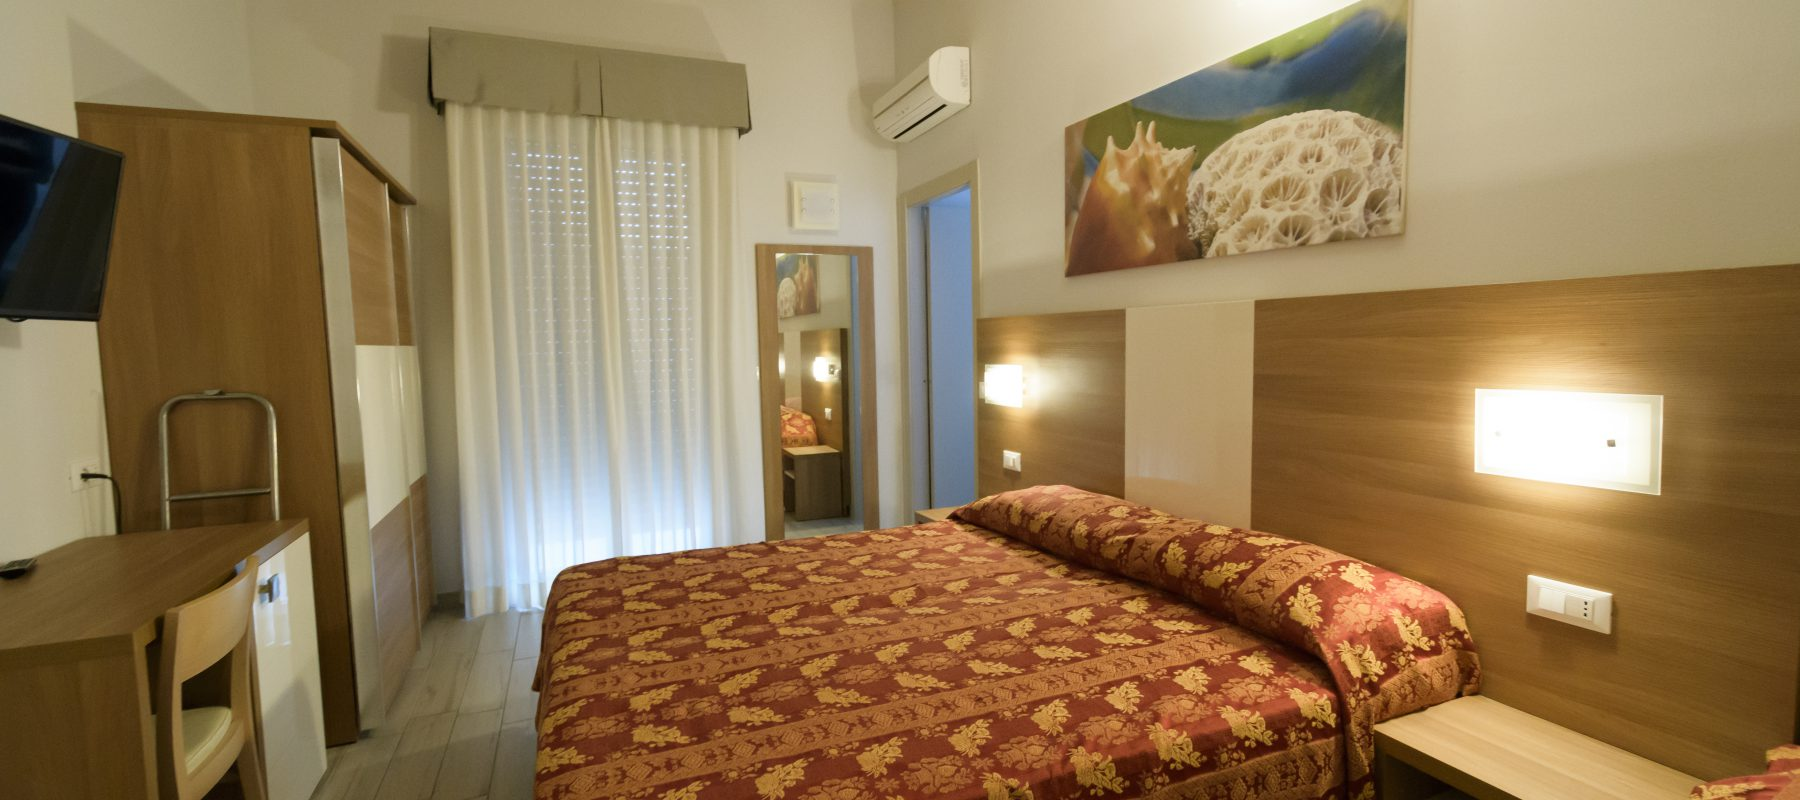 Comfortable rooms for special breaks